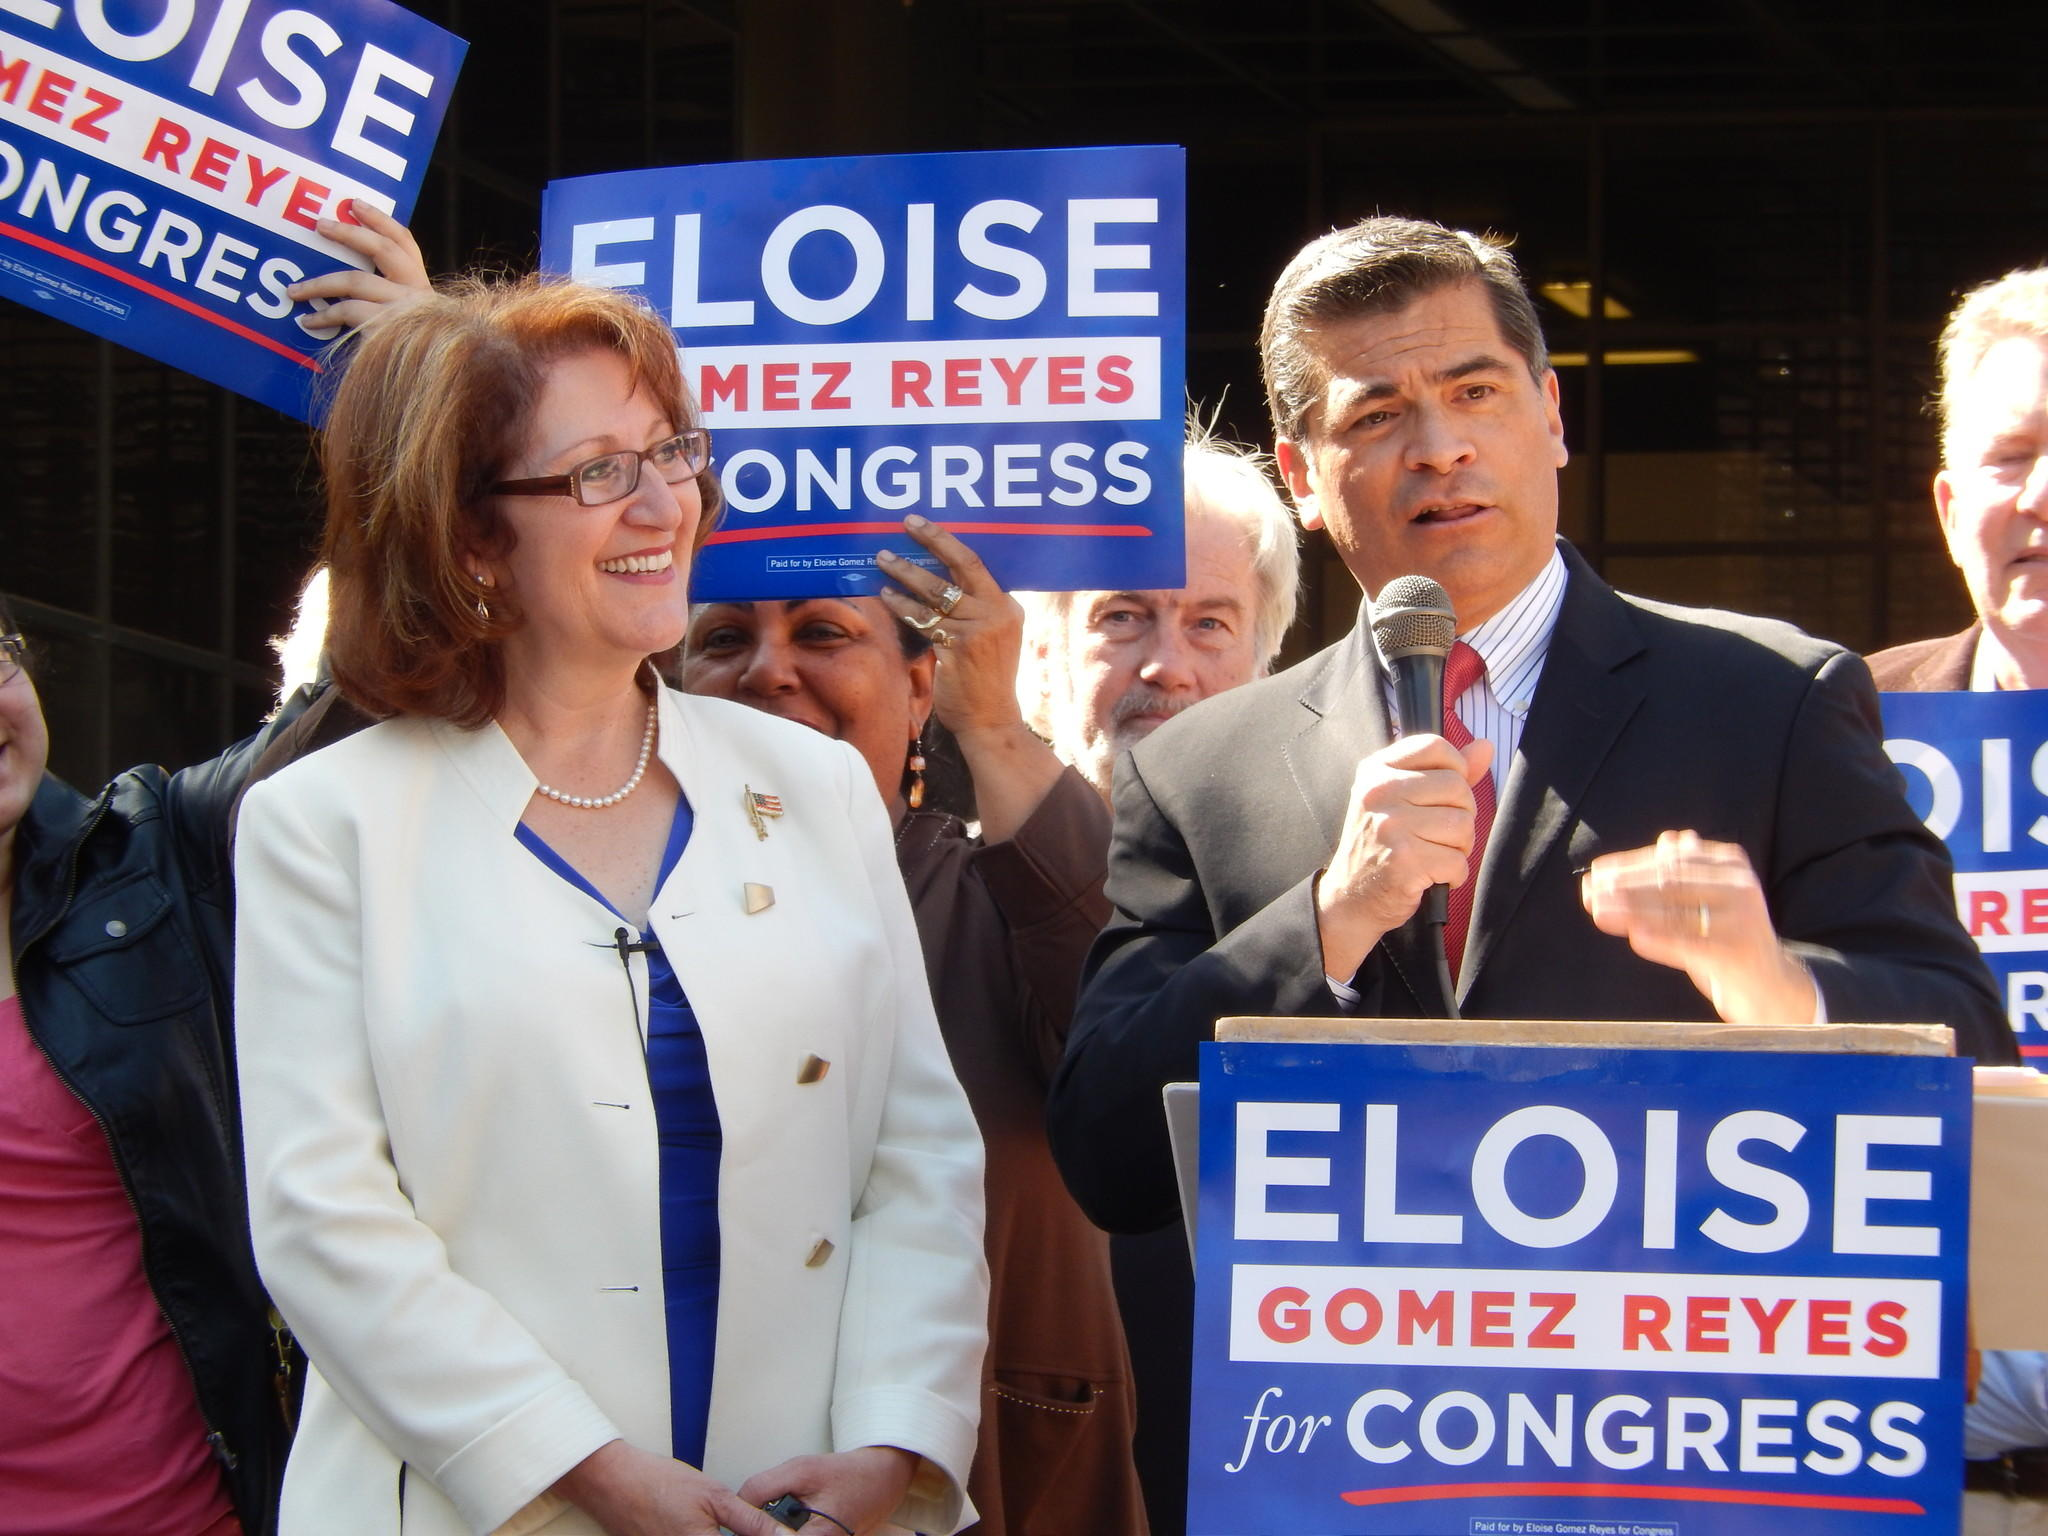 Colton attorney Eloise Gomez Reyes, shown earlier this year with Rep. Xavier Becerra (D-Los Angeles), who has endorsed her.